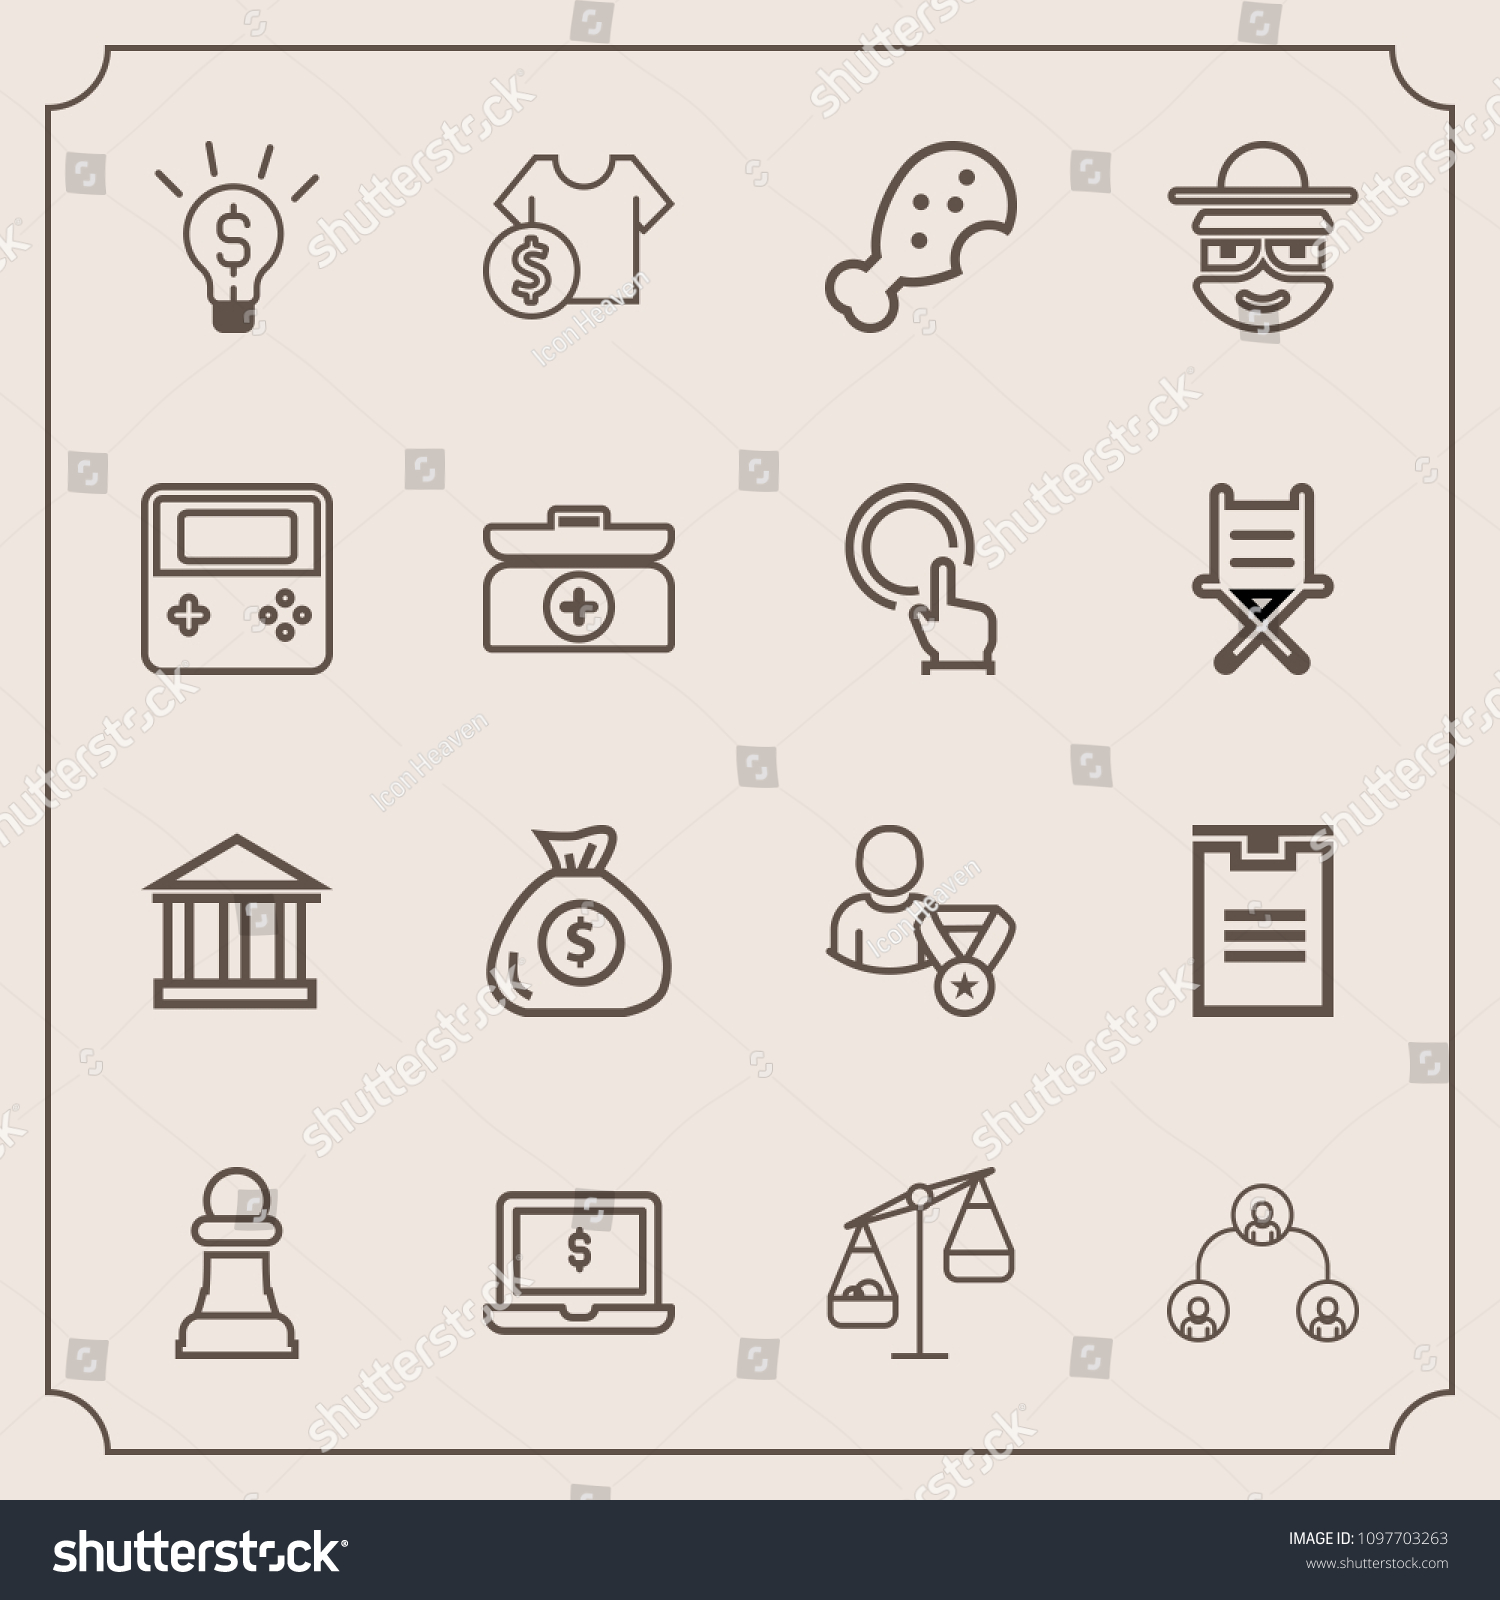 modern simple vector icon set hierarchy stock vector royalty free 1097703263 shutterstock